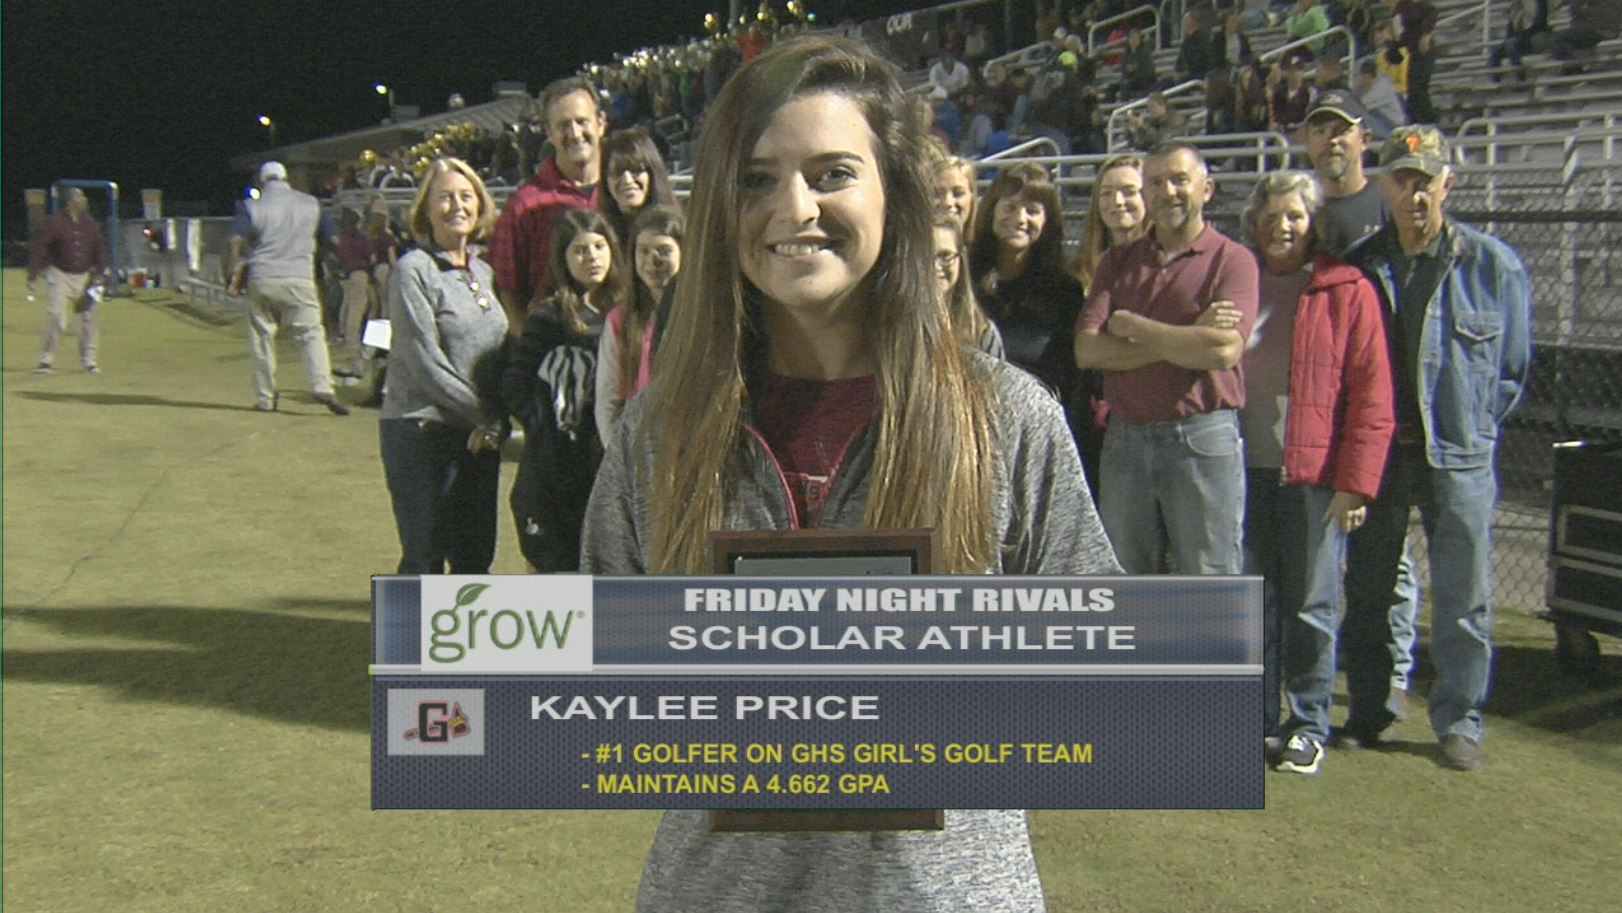 Kaylee Price - Grow Financial Federal Credit Union Scholar Athlete